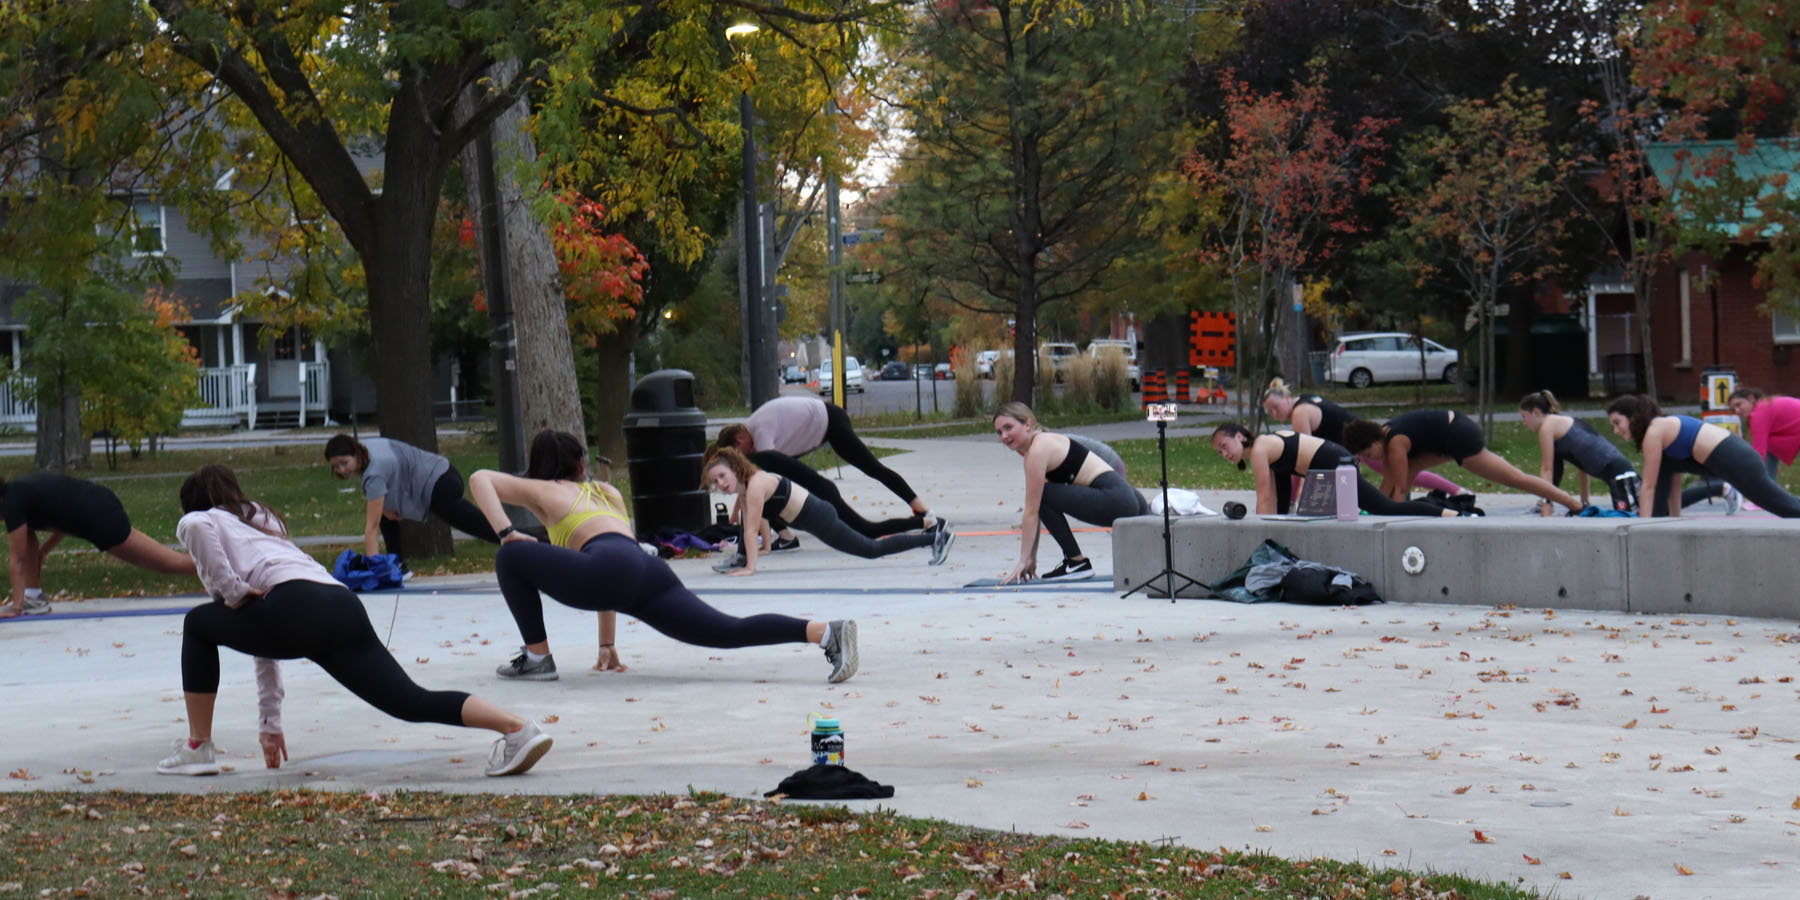 A group of young women workout in a public park in Kingston, Ontario. Alexis Pascoal is their instructor.